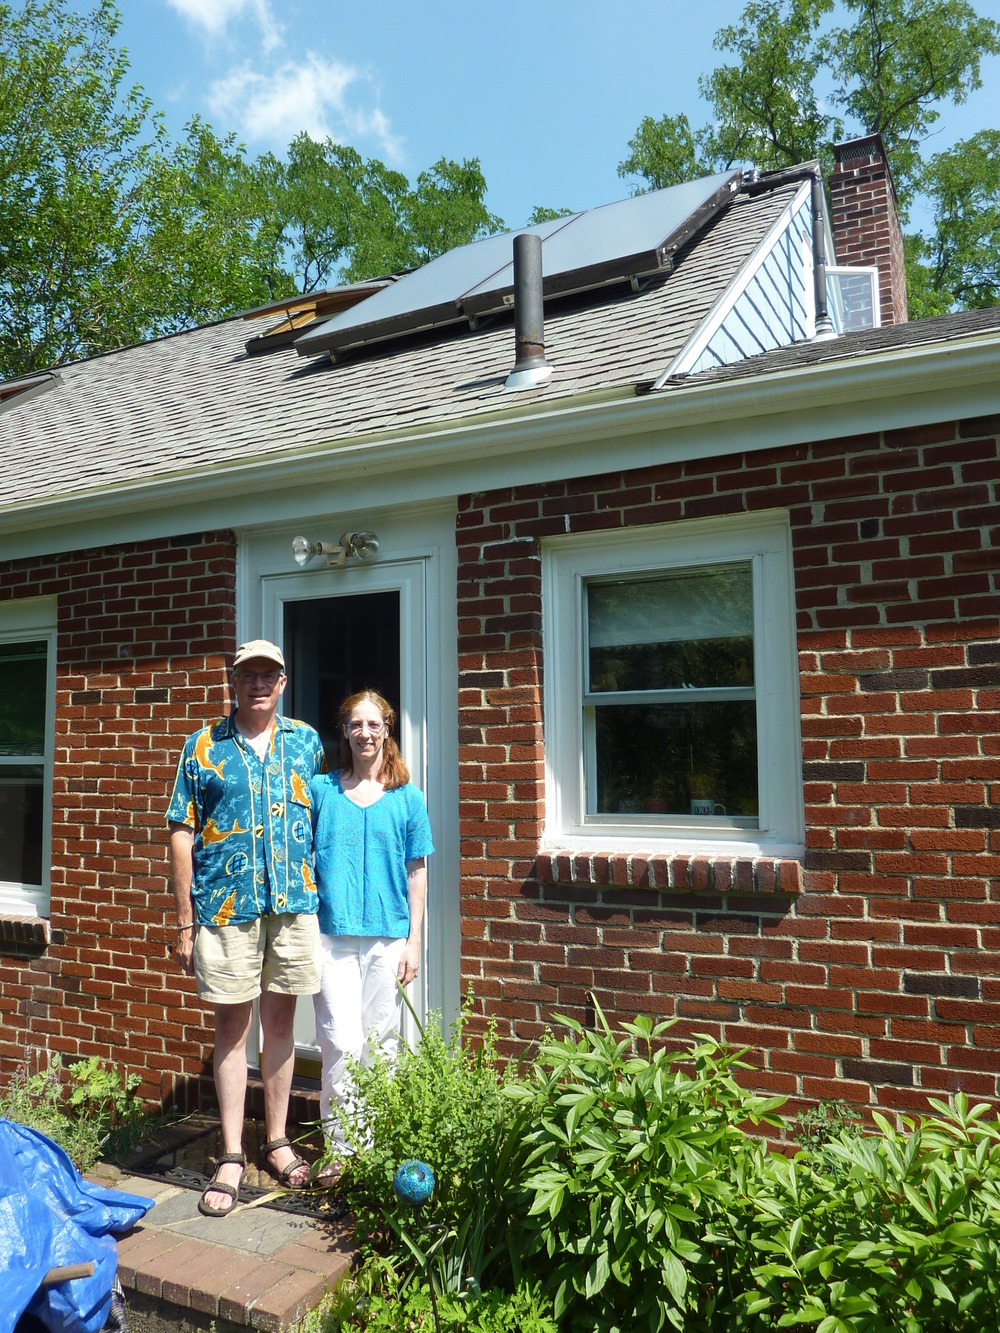 Bill and Patti say the solar hot water system in their Arlington home has cut their electric bills in half.